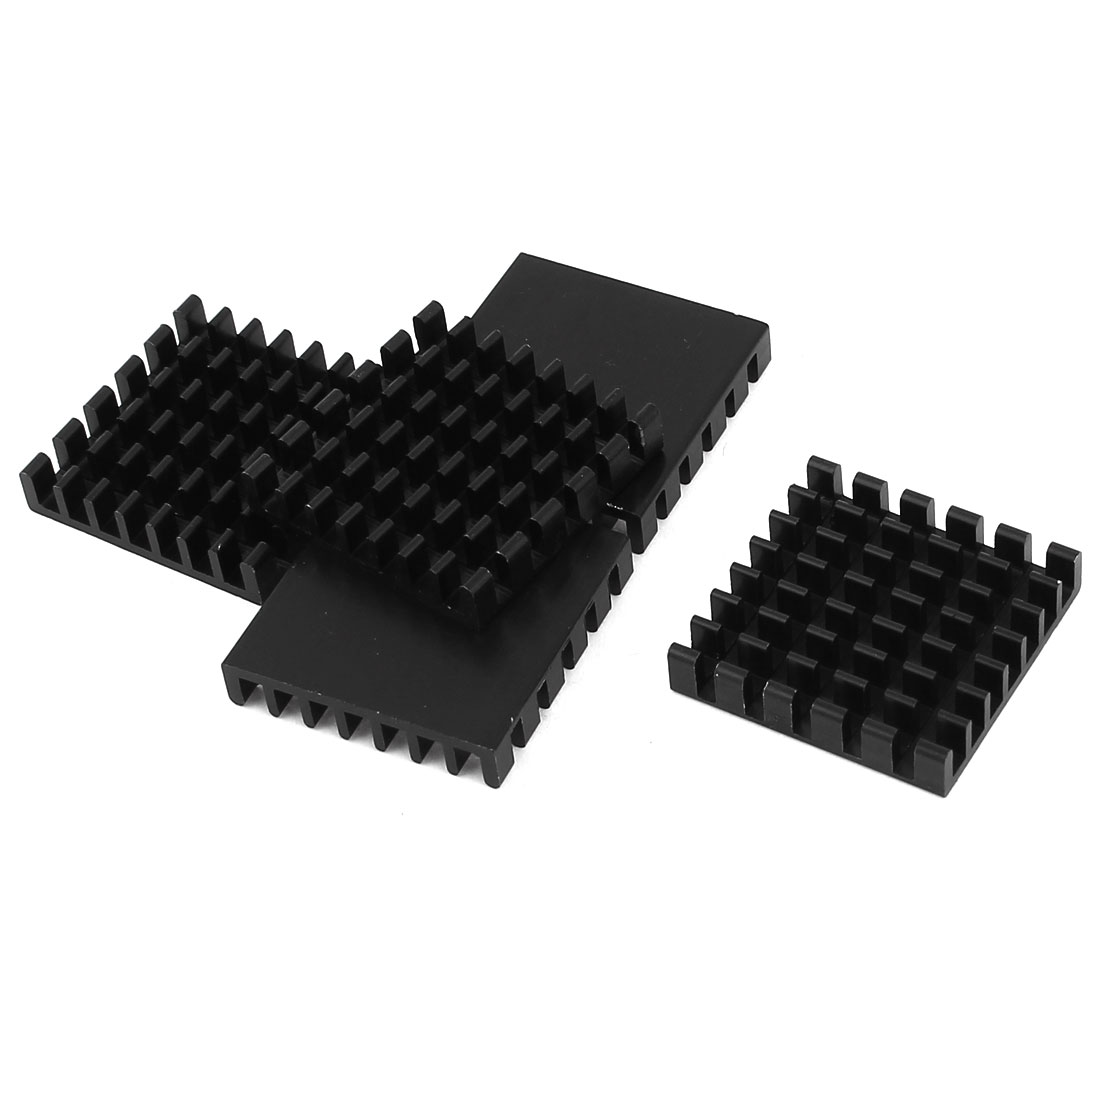 5 Pcs Black Aluminum Cooler Radiator Heat Sink Heatsink 25mm x 25mm x 5mm